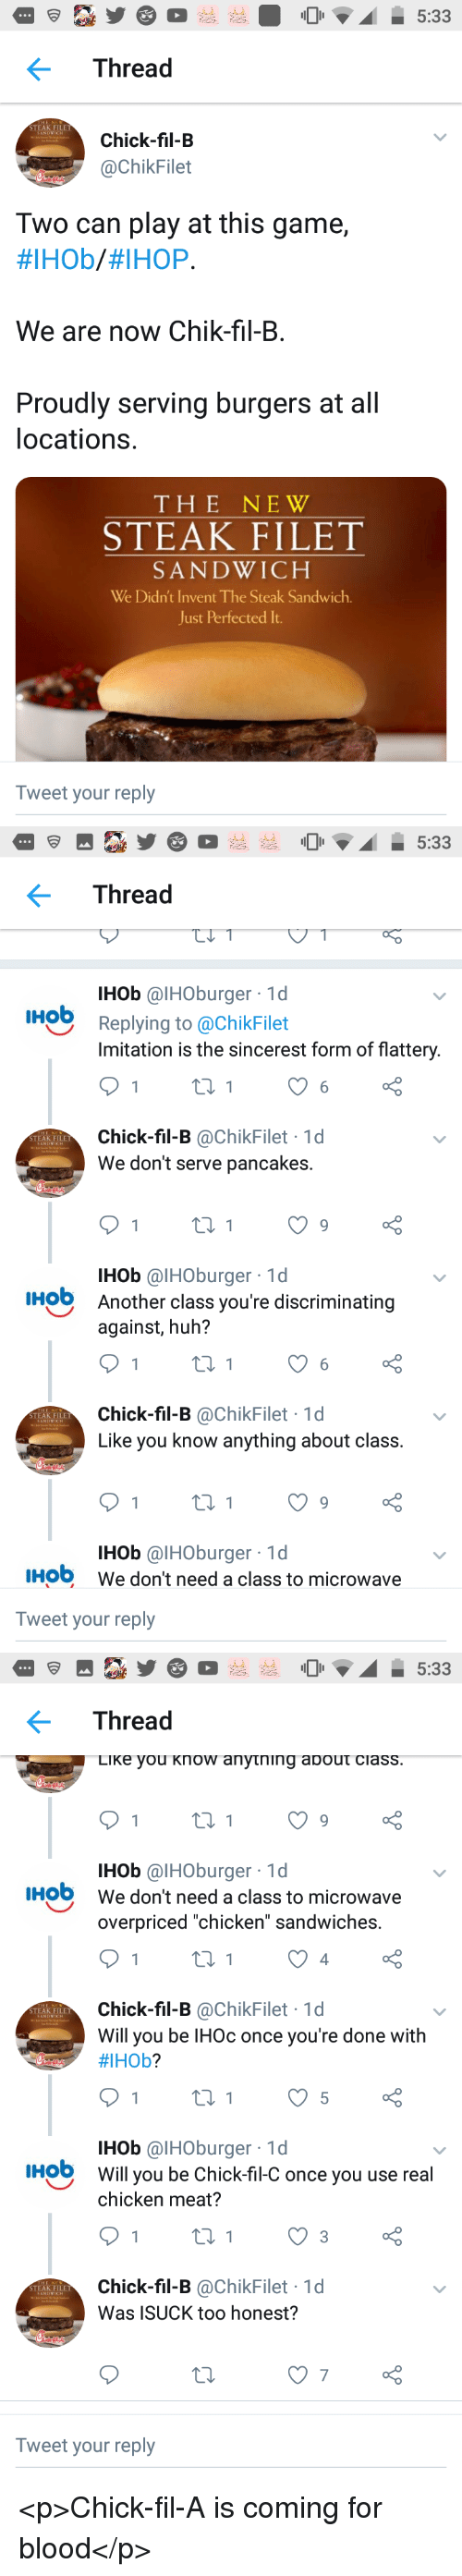 """Chick-Fil-A, Huh, and Ihop: Thread  STEAK FILET  Chick-fil-B  @ChikFilet  Two can play at this game,  #IHOb/#IHOP.  We are now Chik-fil-B.  Proudly serving burgers at all  locations.  THE NEW  STEAK FILET  SANDWICH  We Didn't Invent The Steak Sandwich.  Just Perfected It  Tweet your reply   Thread  IHob @IHOburger 1d  IHob  Replying to @ChikFilet  Imitation is the sincerest form of flattery  Chick-fil-B @ChikFilet 1d  We don't serve pancakes.  STEAK FILET  IHob @IHOburger 1d  Another class you're discriminating  against, huh?  HO  Chick-fil-B @ChikFilet 1d  Like you know anything about class  STEAK FILET  IHob @IHOburger 1d  We don't need a class to microwave  IHO  Tweet your reply   Thread  LiKe you Know anytning about ciass  IHob @IHOburger 1d  We don't need a class to microwave  overpriced """"chicken"""" sandwiches.  IHO  4  Chick-fil-B @ChikFilet 1d  Will you be IHOc once you're done with  #IHOb?  STEAK FILET  IHob @IHOburger 1d  Will you be Chick-fil-C once you use real  chicken meat?  HO  Chick-fil-B @ChikFilet 1d  Was ISUCK too honest?  STEAK FILET  7  Tweet your reply <p>Chick-fil-A is coming for blood</p>"""